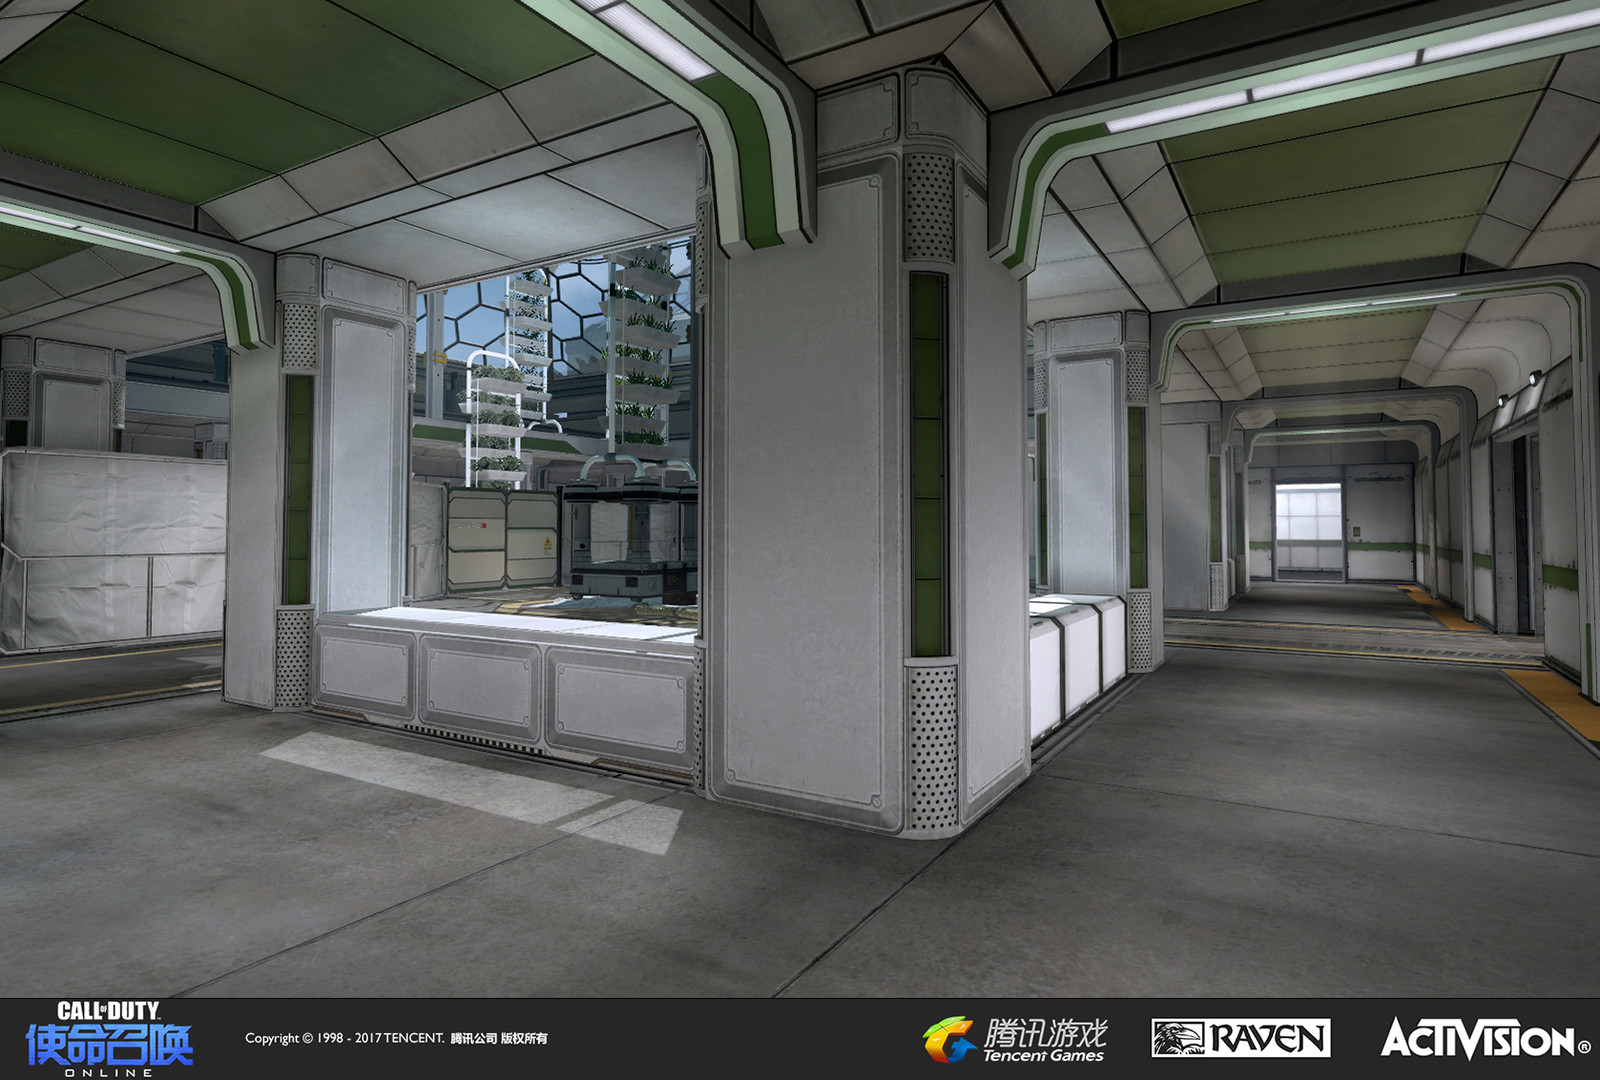 Interior hallways of the first greenhouse building. I built the geo, custom models, and began the material treatment. The green color-coding and some tweaks were added later by our Shanghai team prior to release as we had been moved to another project.